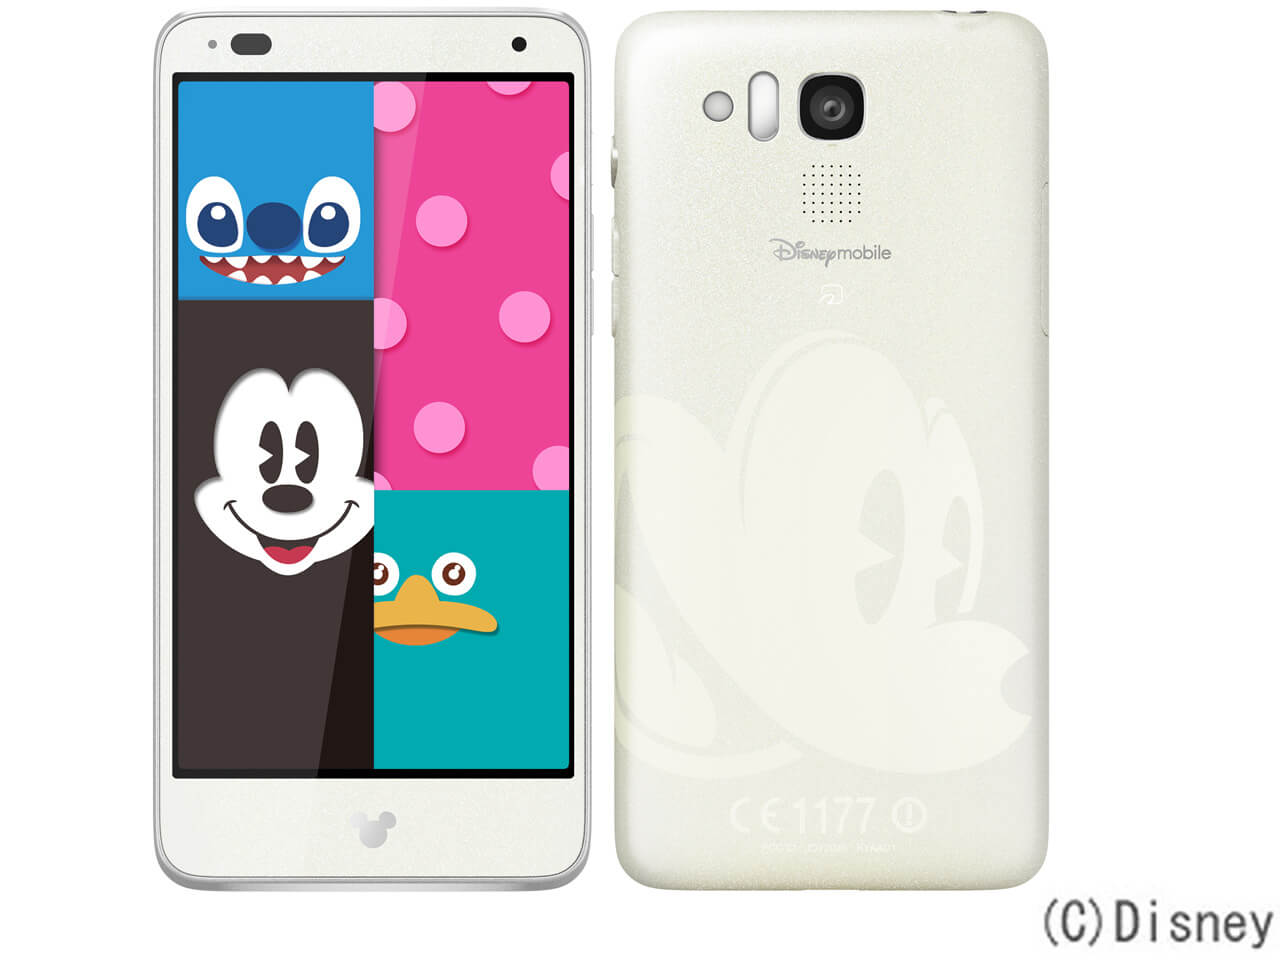 Disney Mobile Kyocera Disney Mobile on SoftBank DM015K